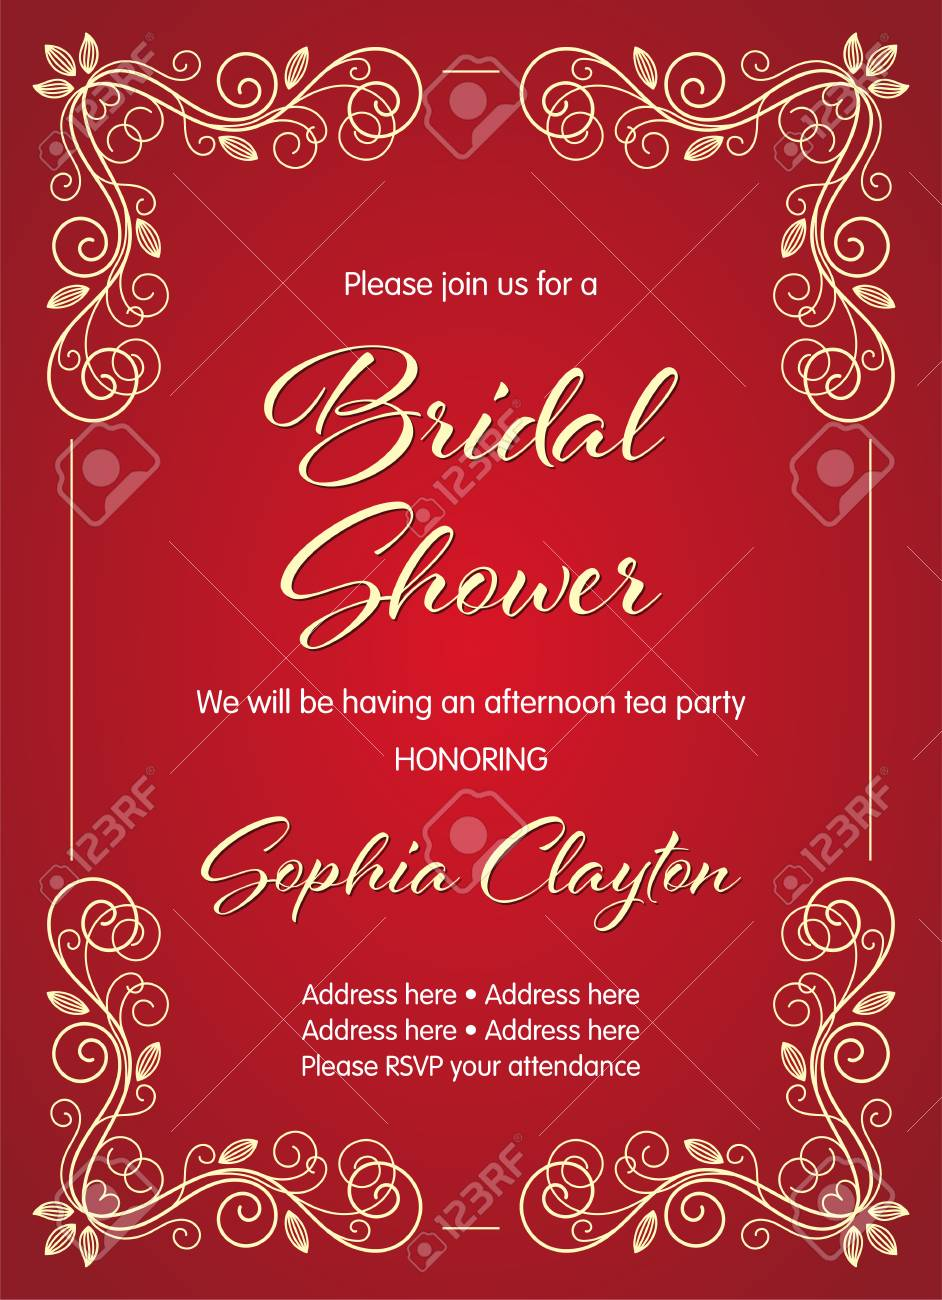 bridal shower invitation in retro style with decorative design elements vector illustration stock vector